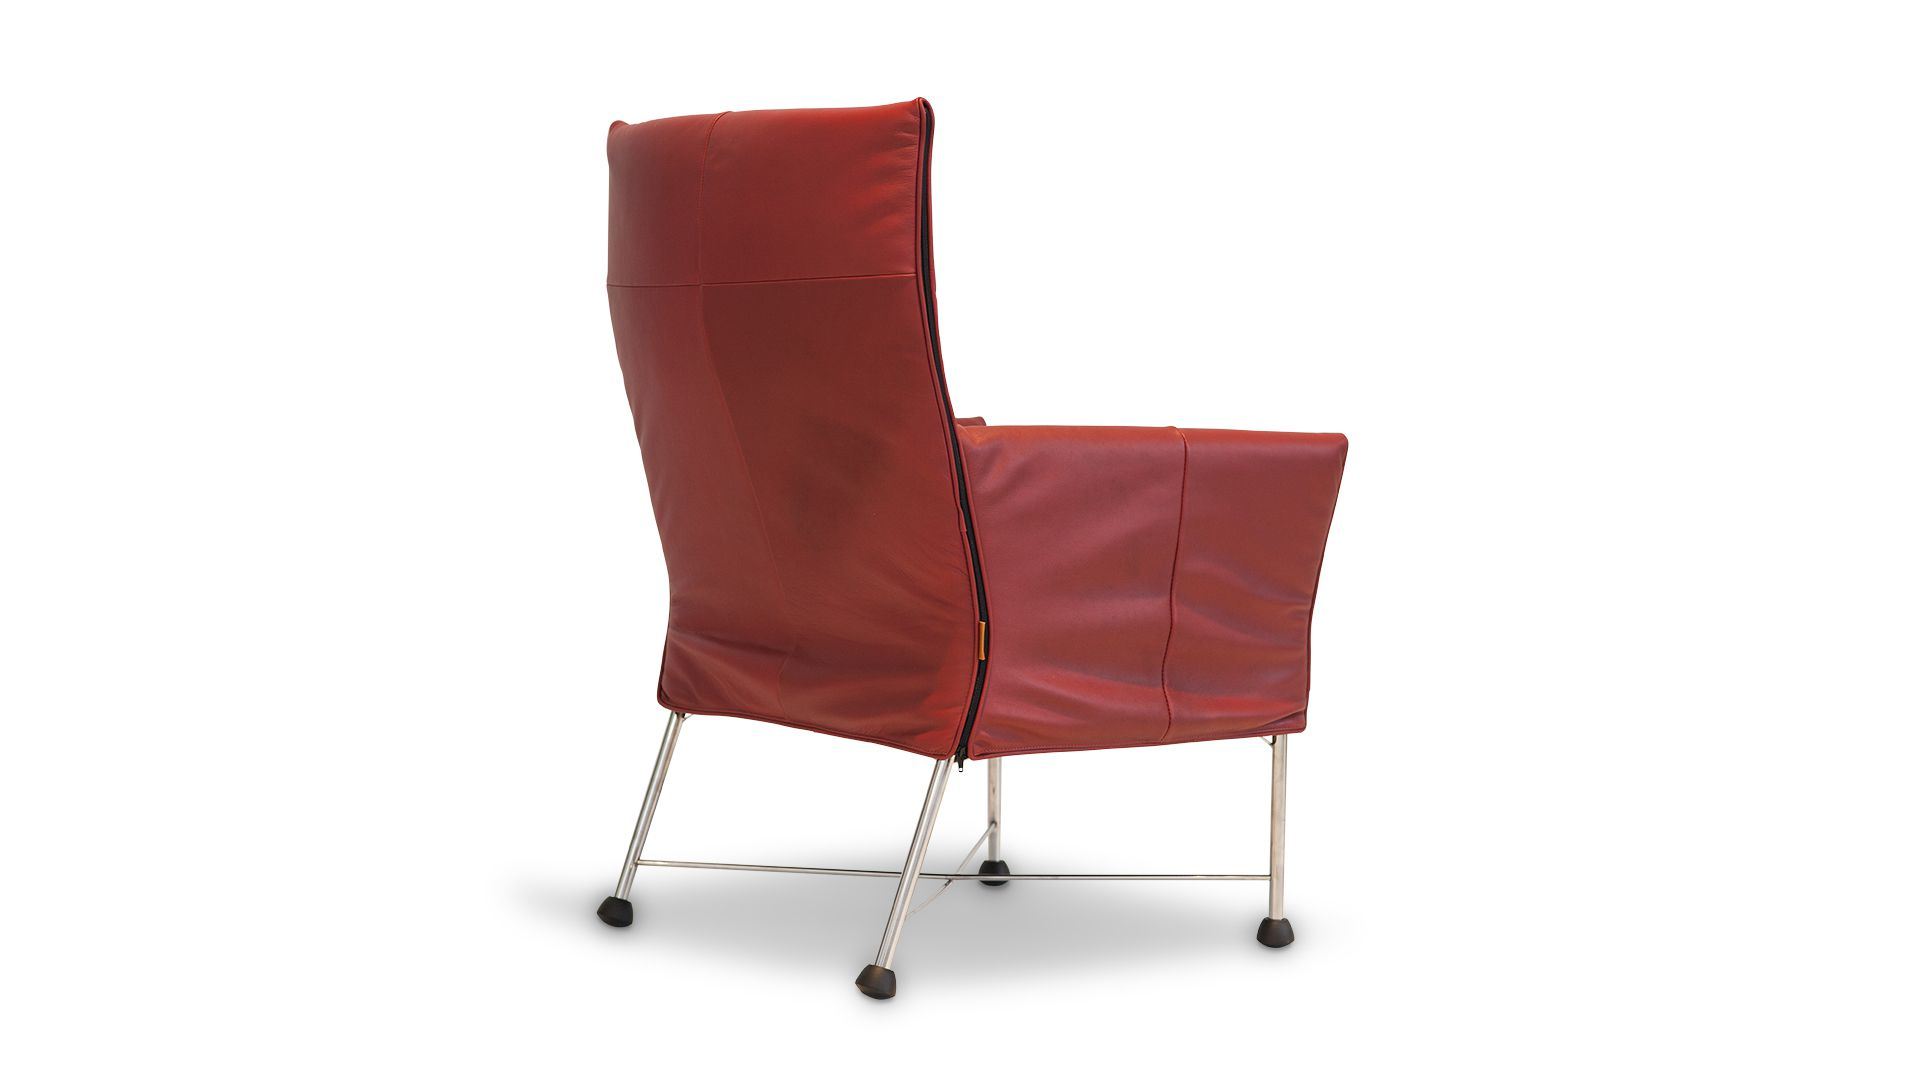 Montis_Charly_fauteuil_leer